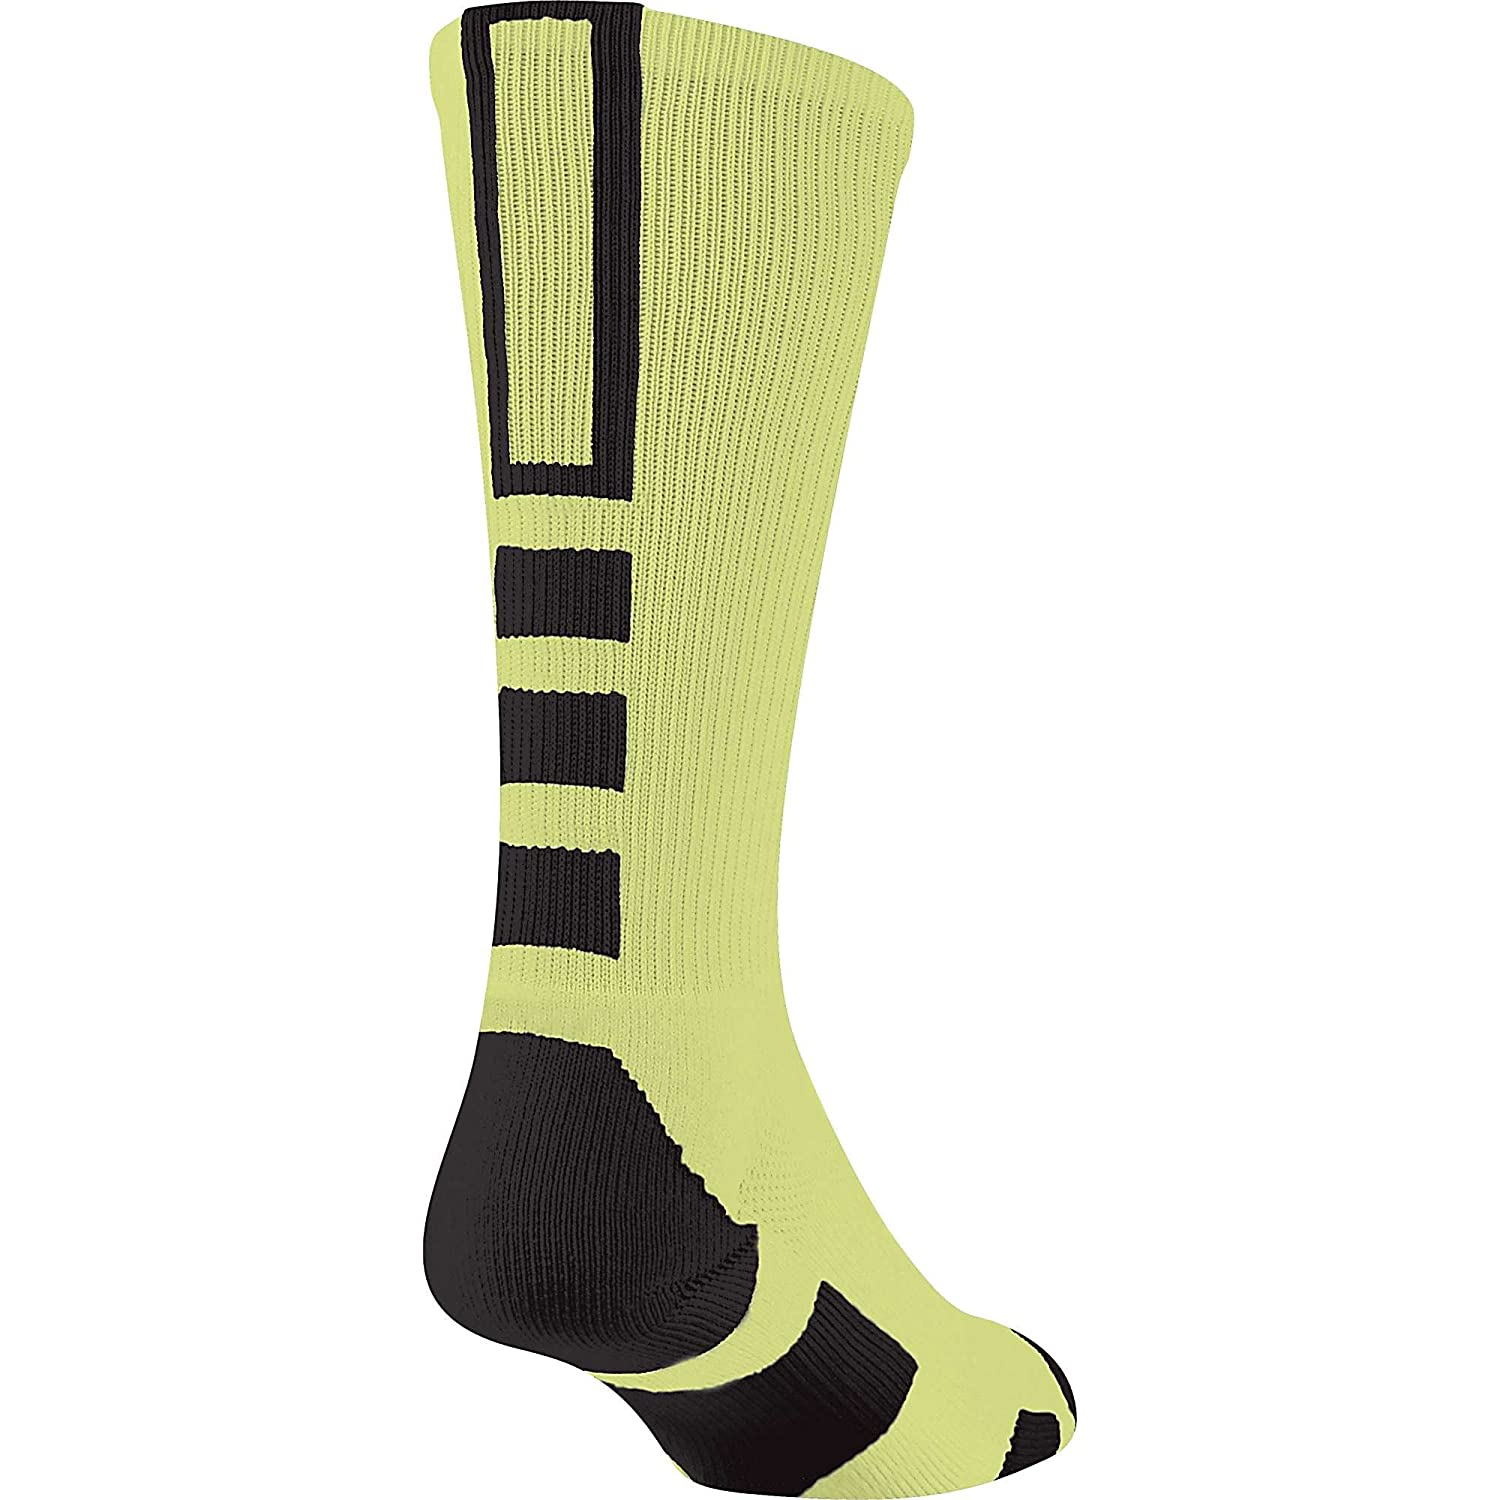 Baseline 2.0 Athletic Crew Socks 20 Colors